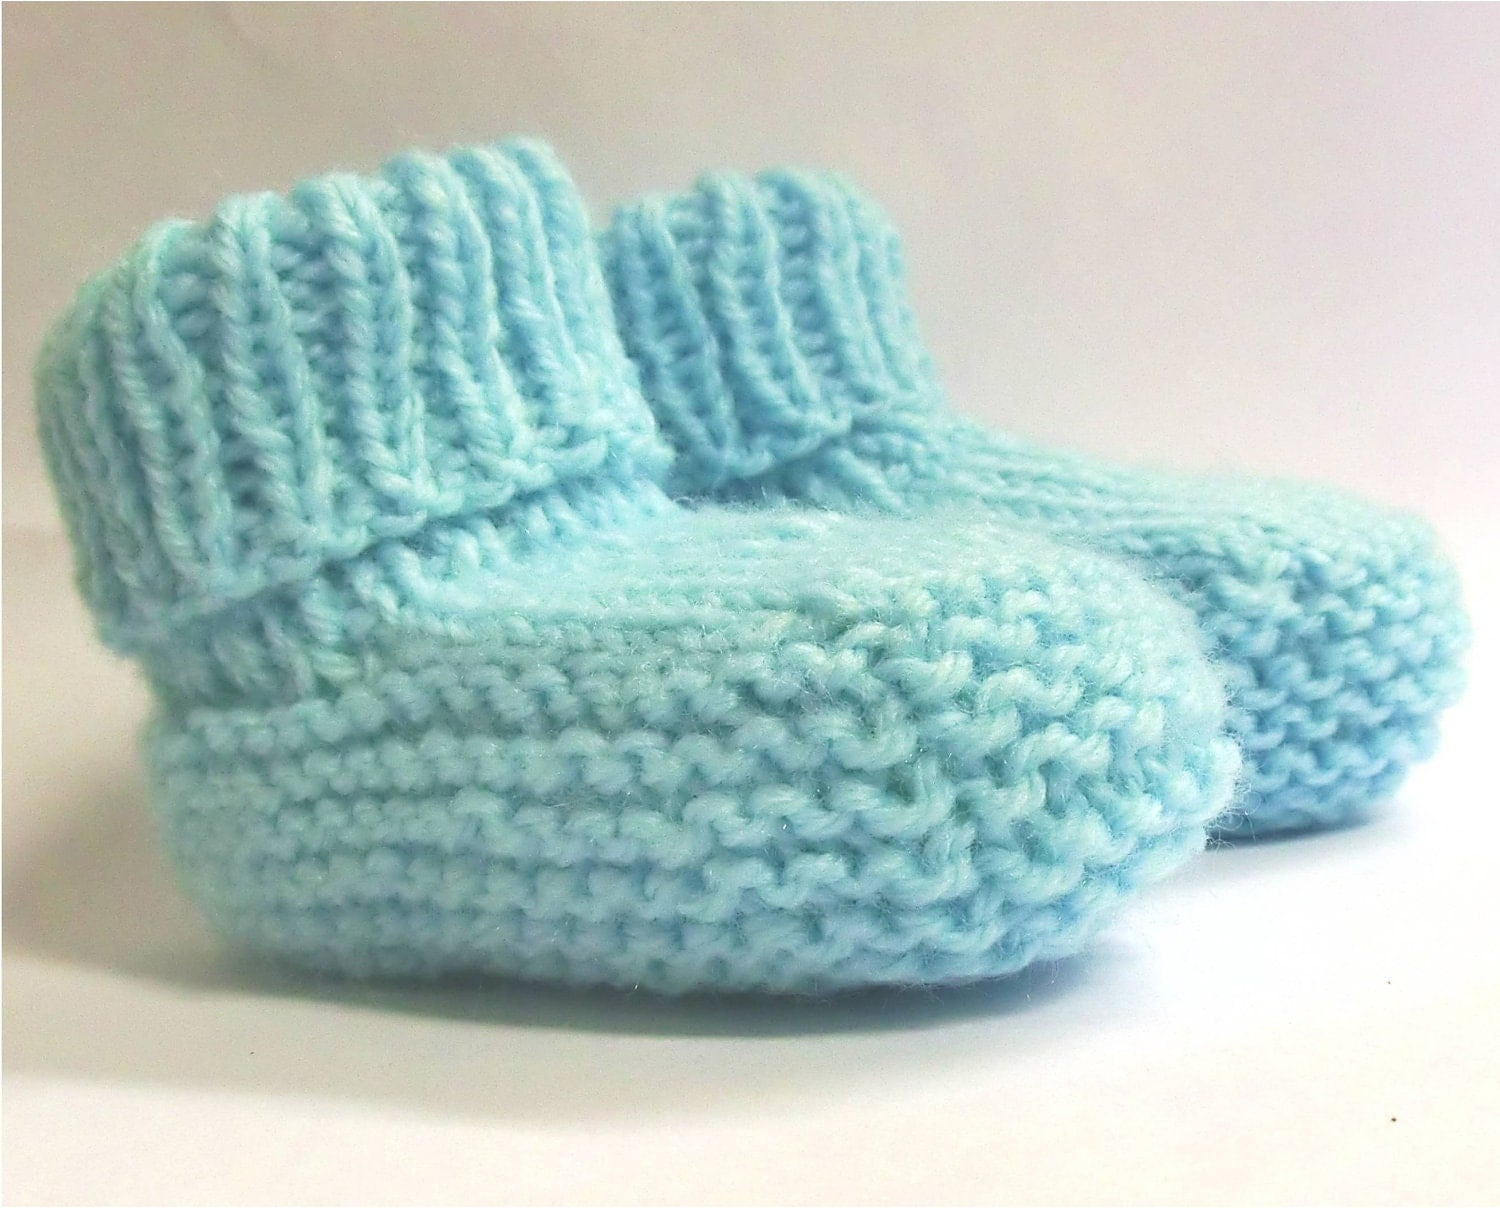 Knitting Baby Booties Patterns : Baby booties knitting pattern pdf instant download